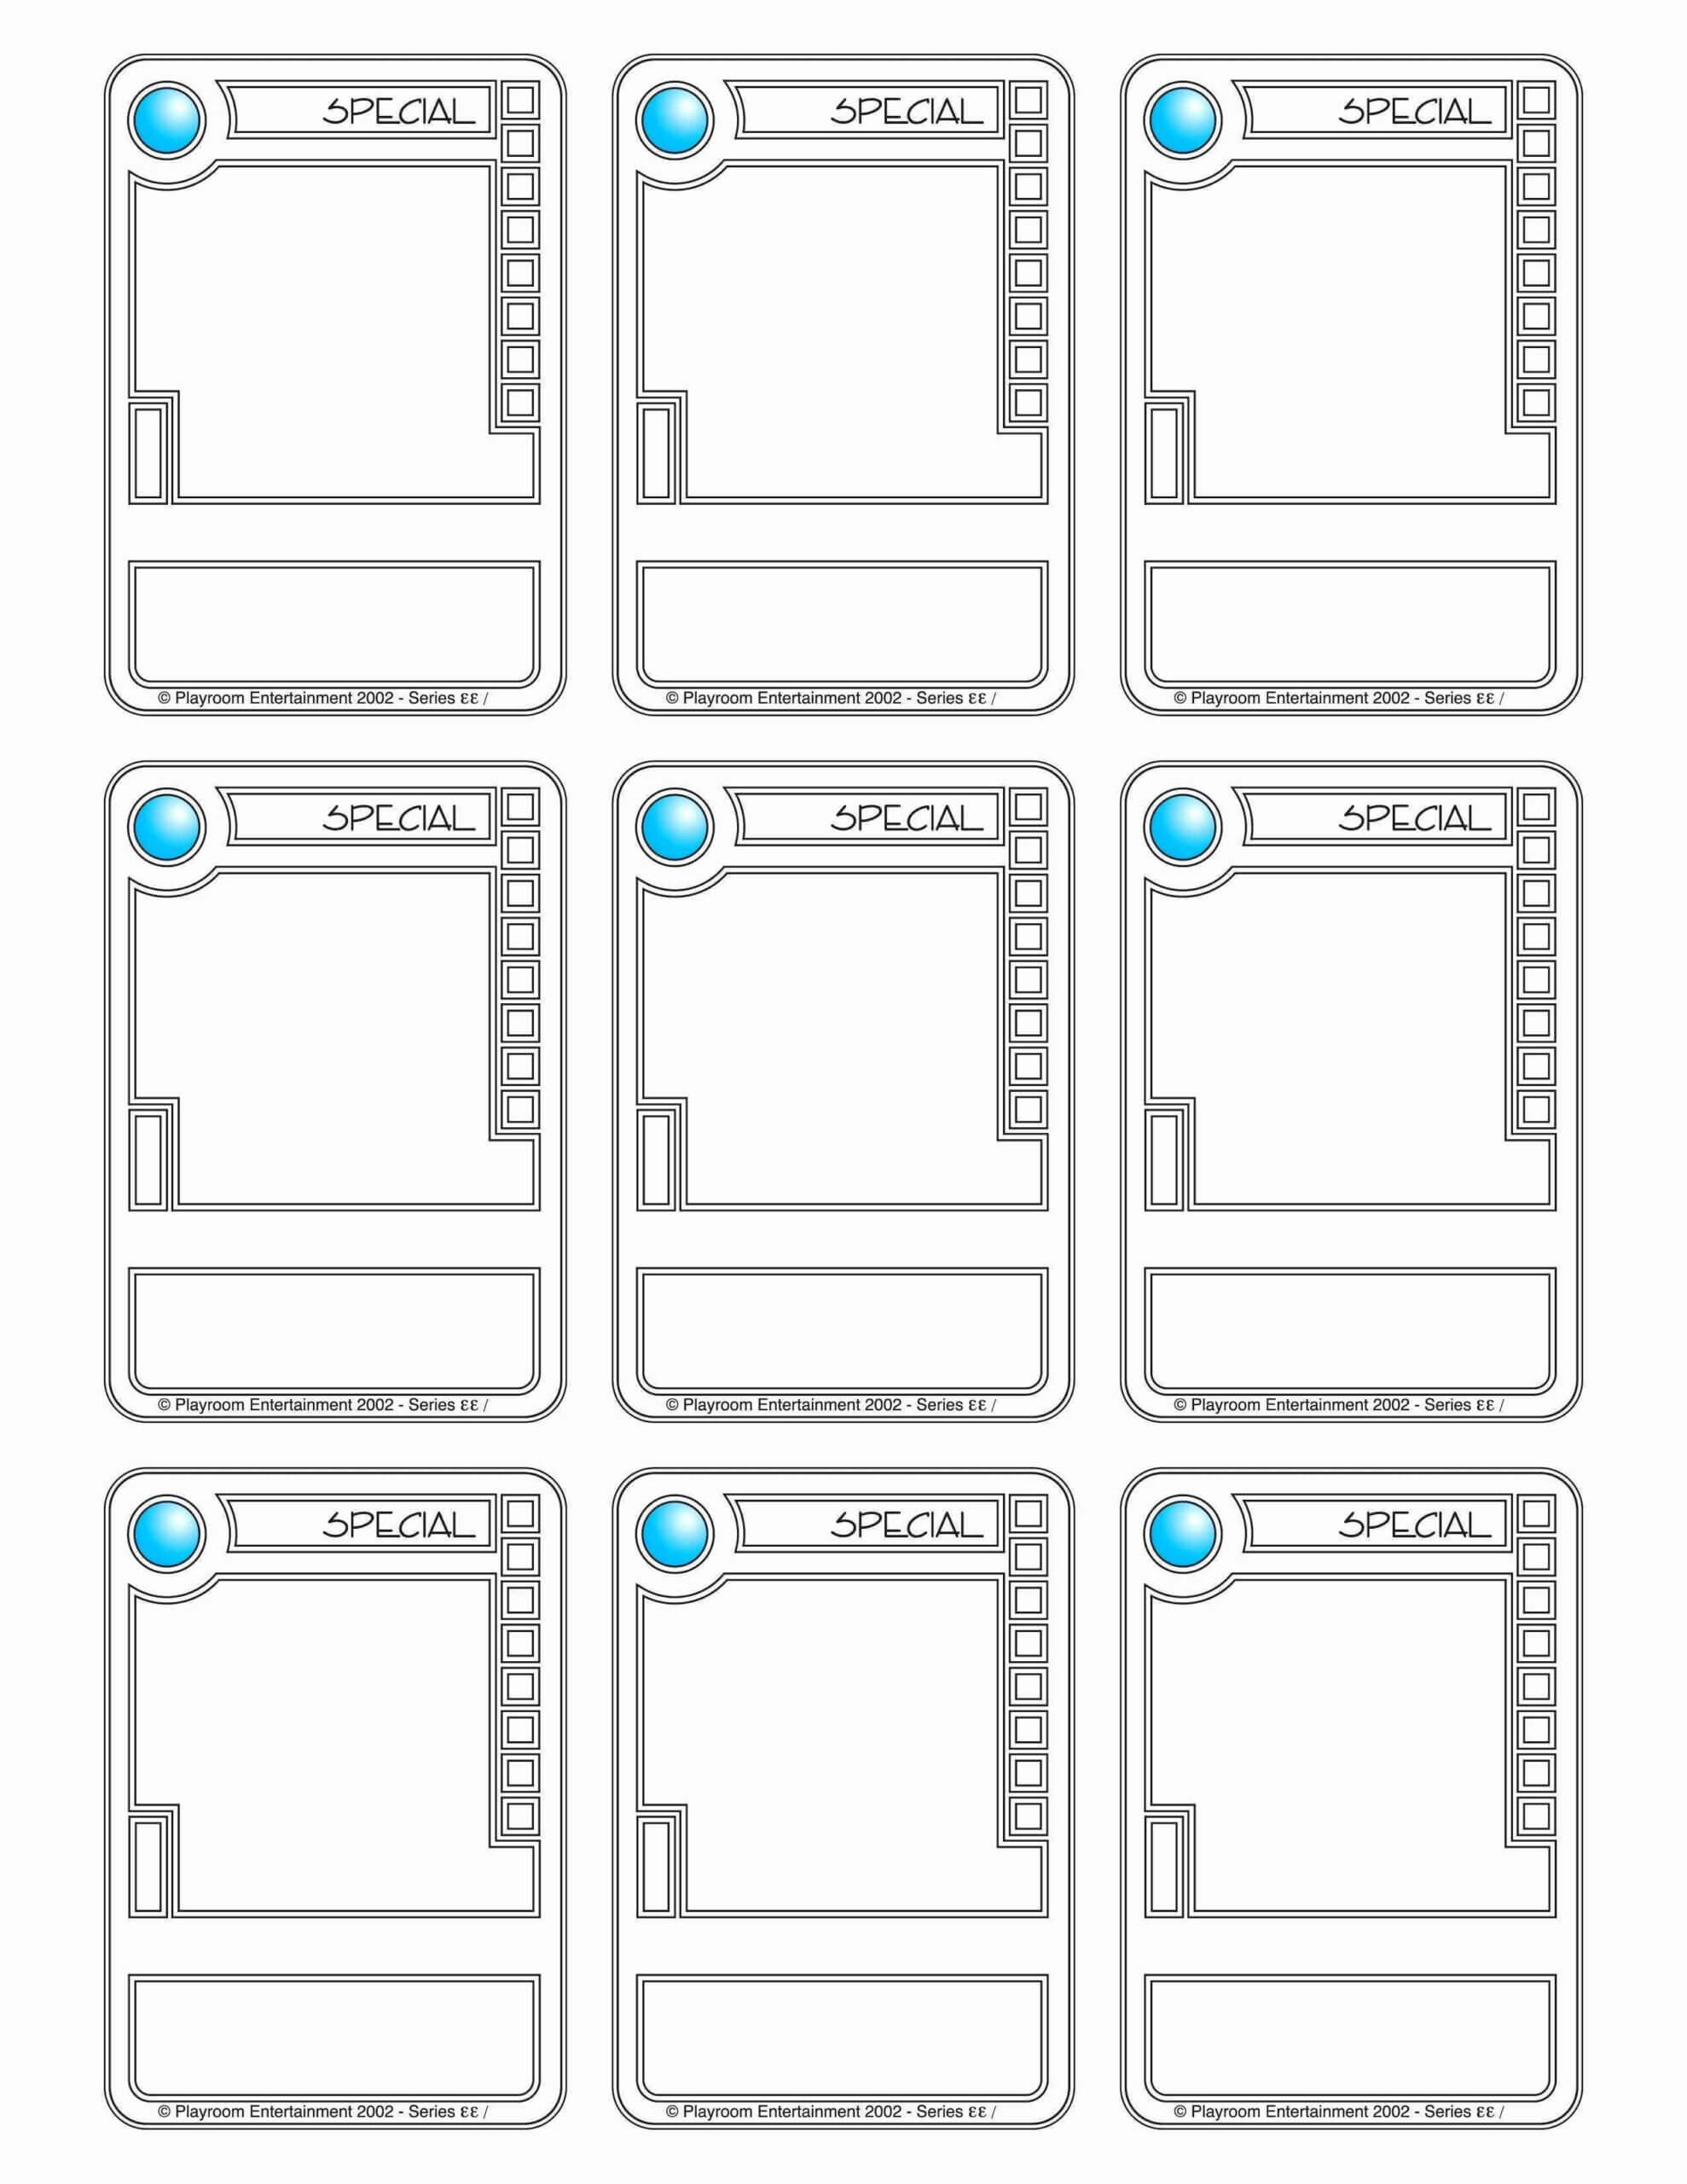 001 Trading Card Maker Free Examples Template For Success In In Card Game Template Maker